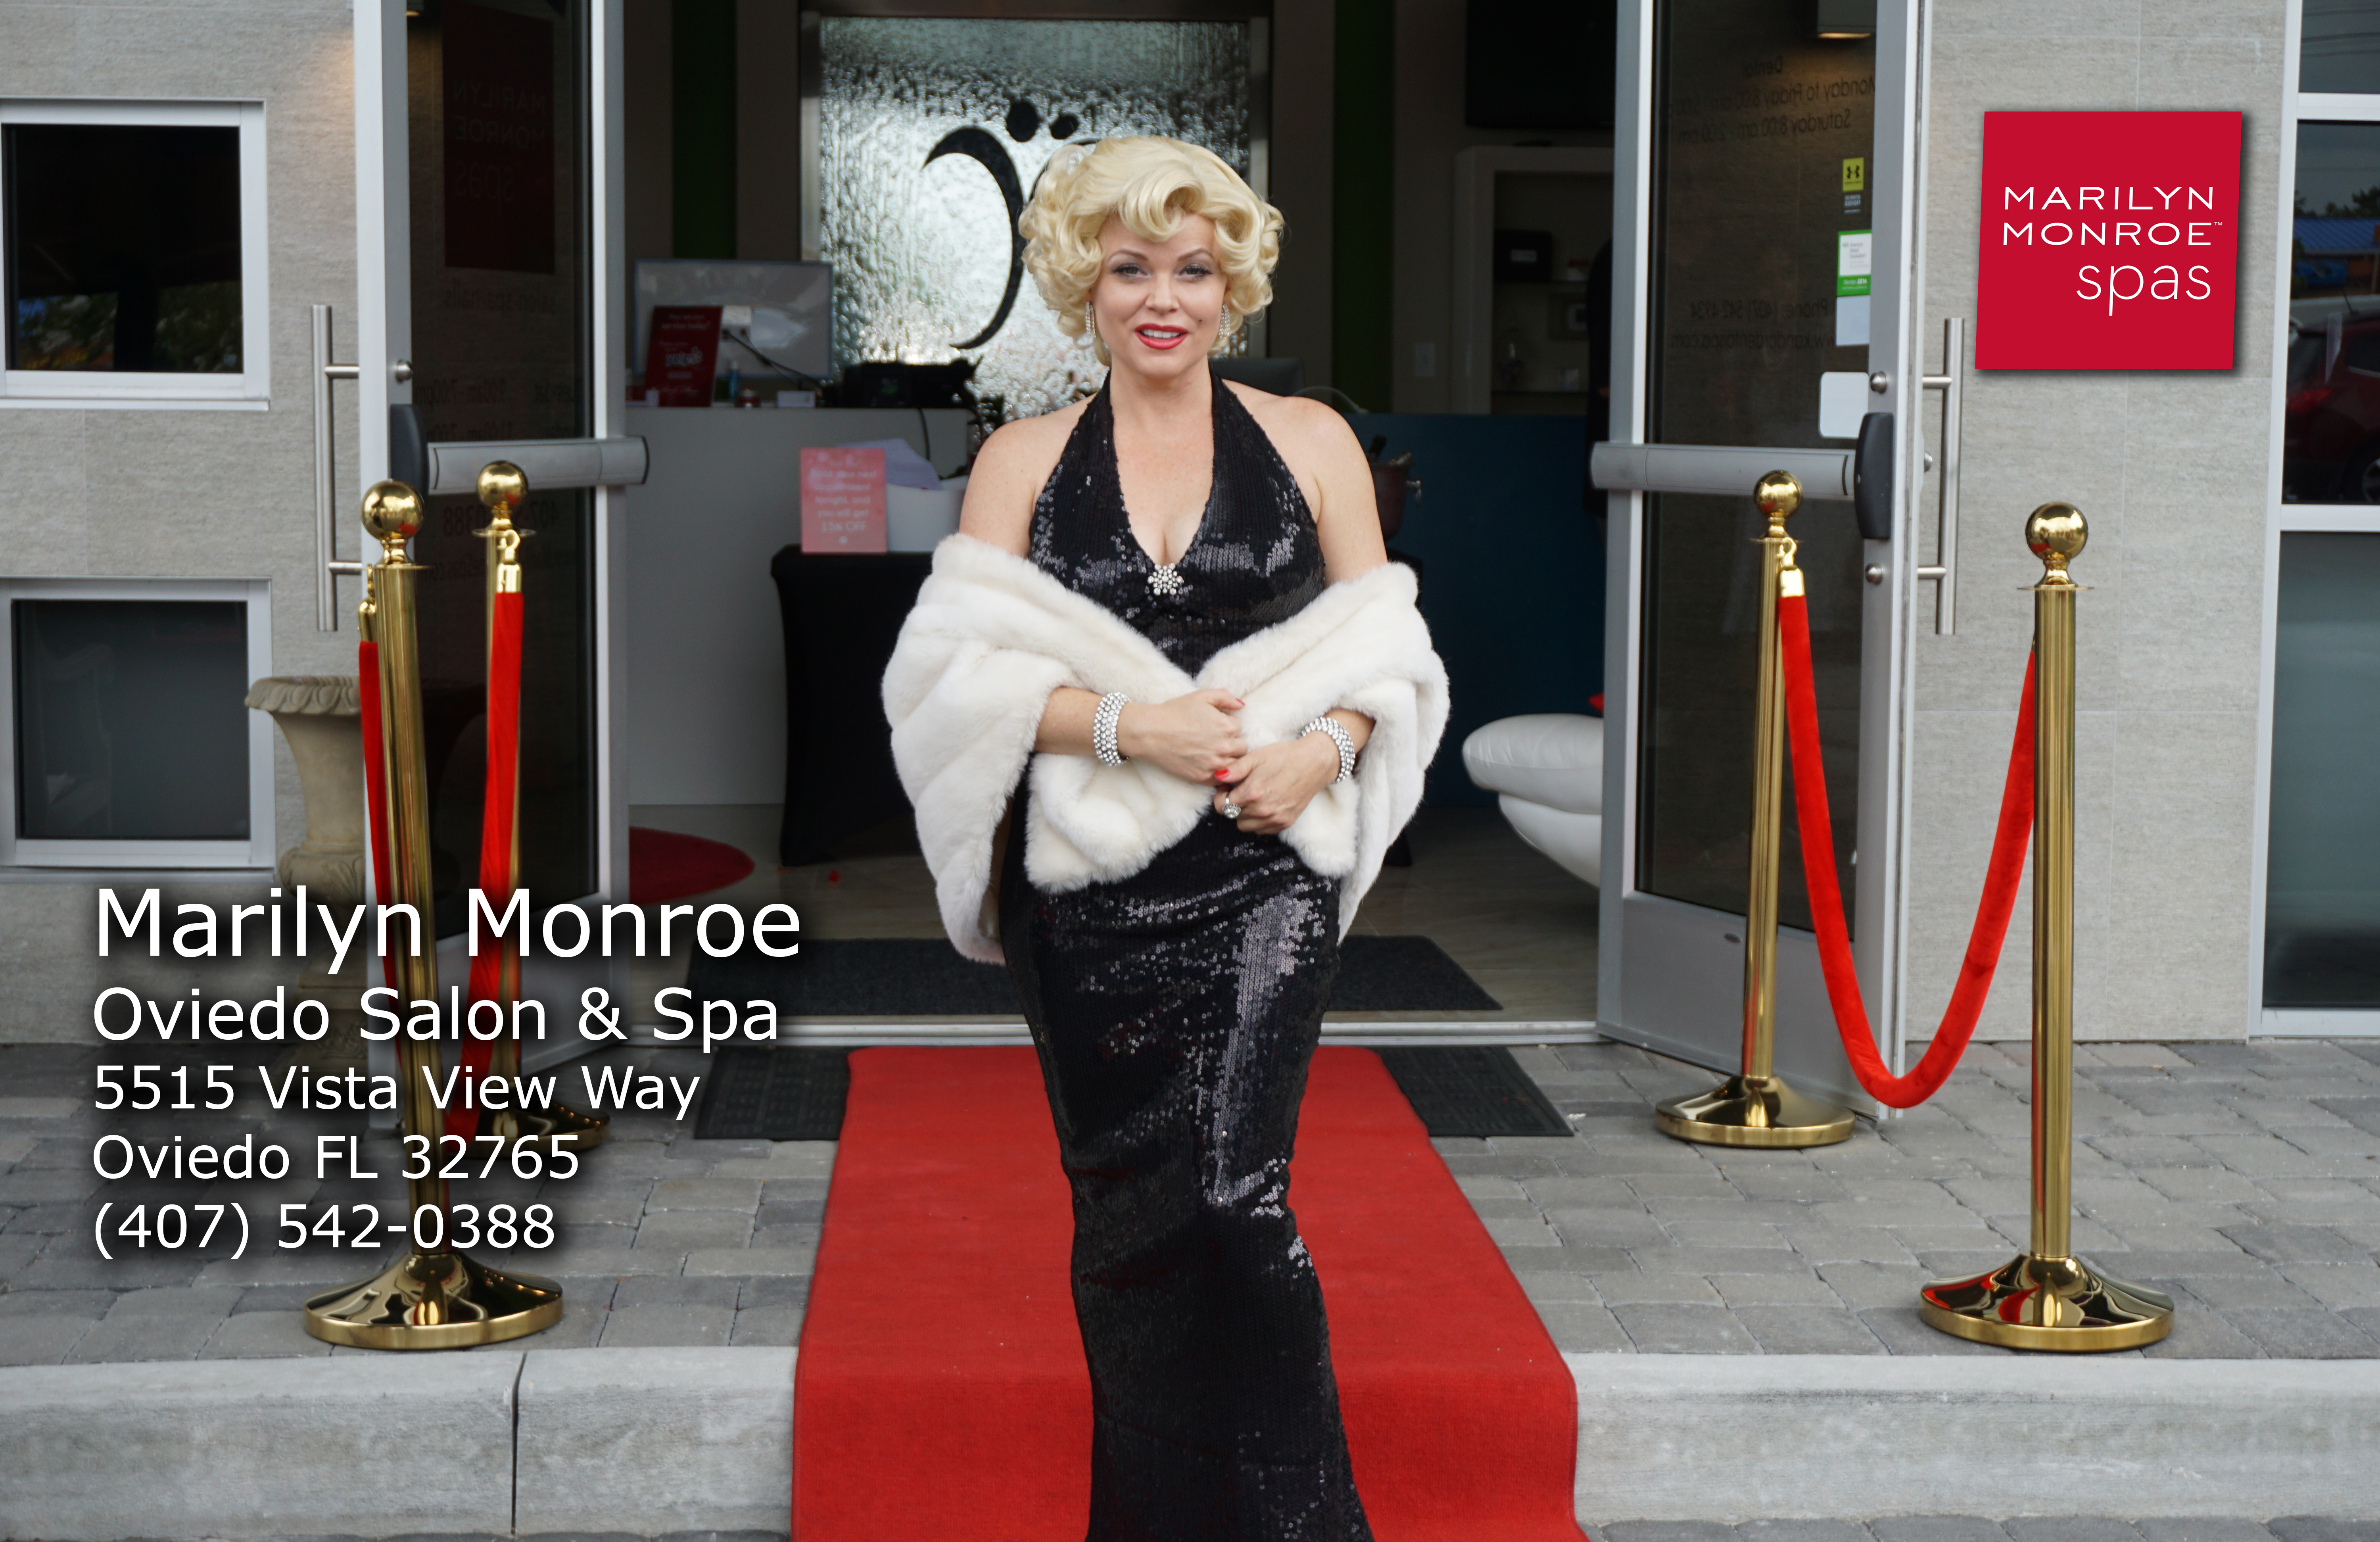 Marilyn Monroe Salon & Spa Oviedo FL